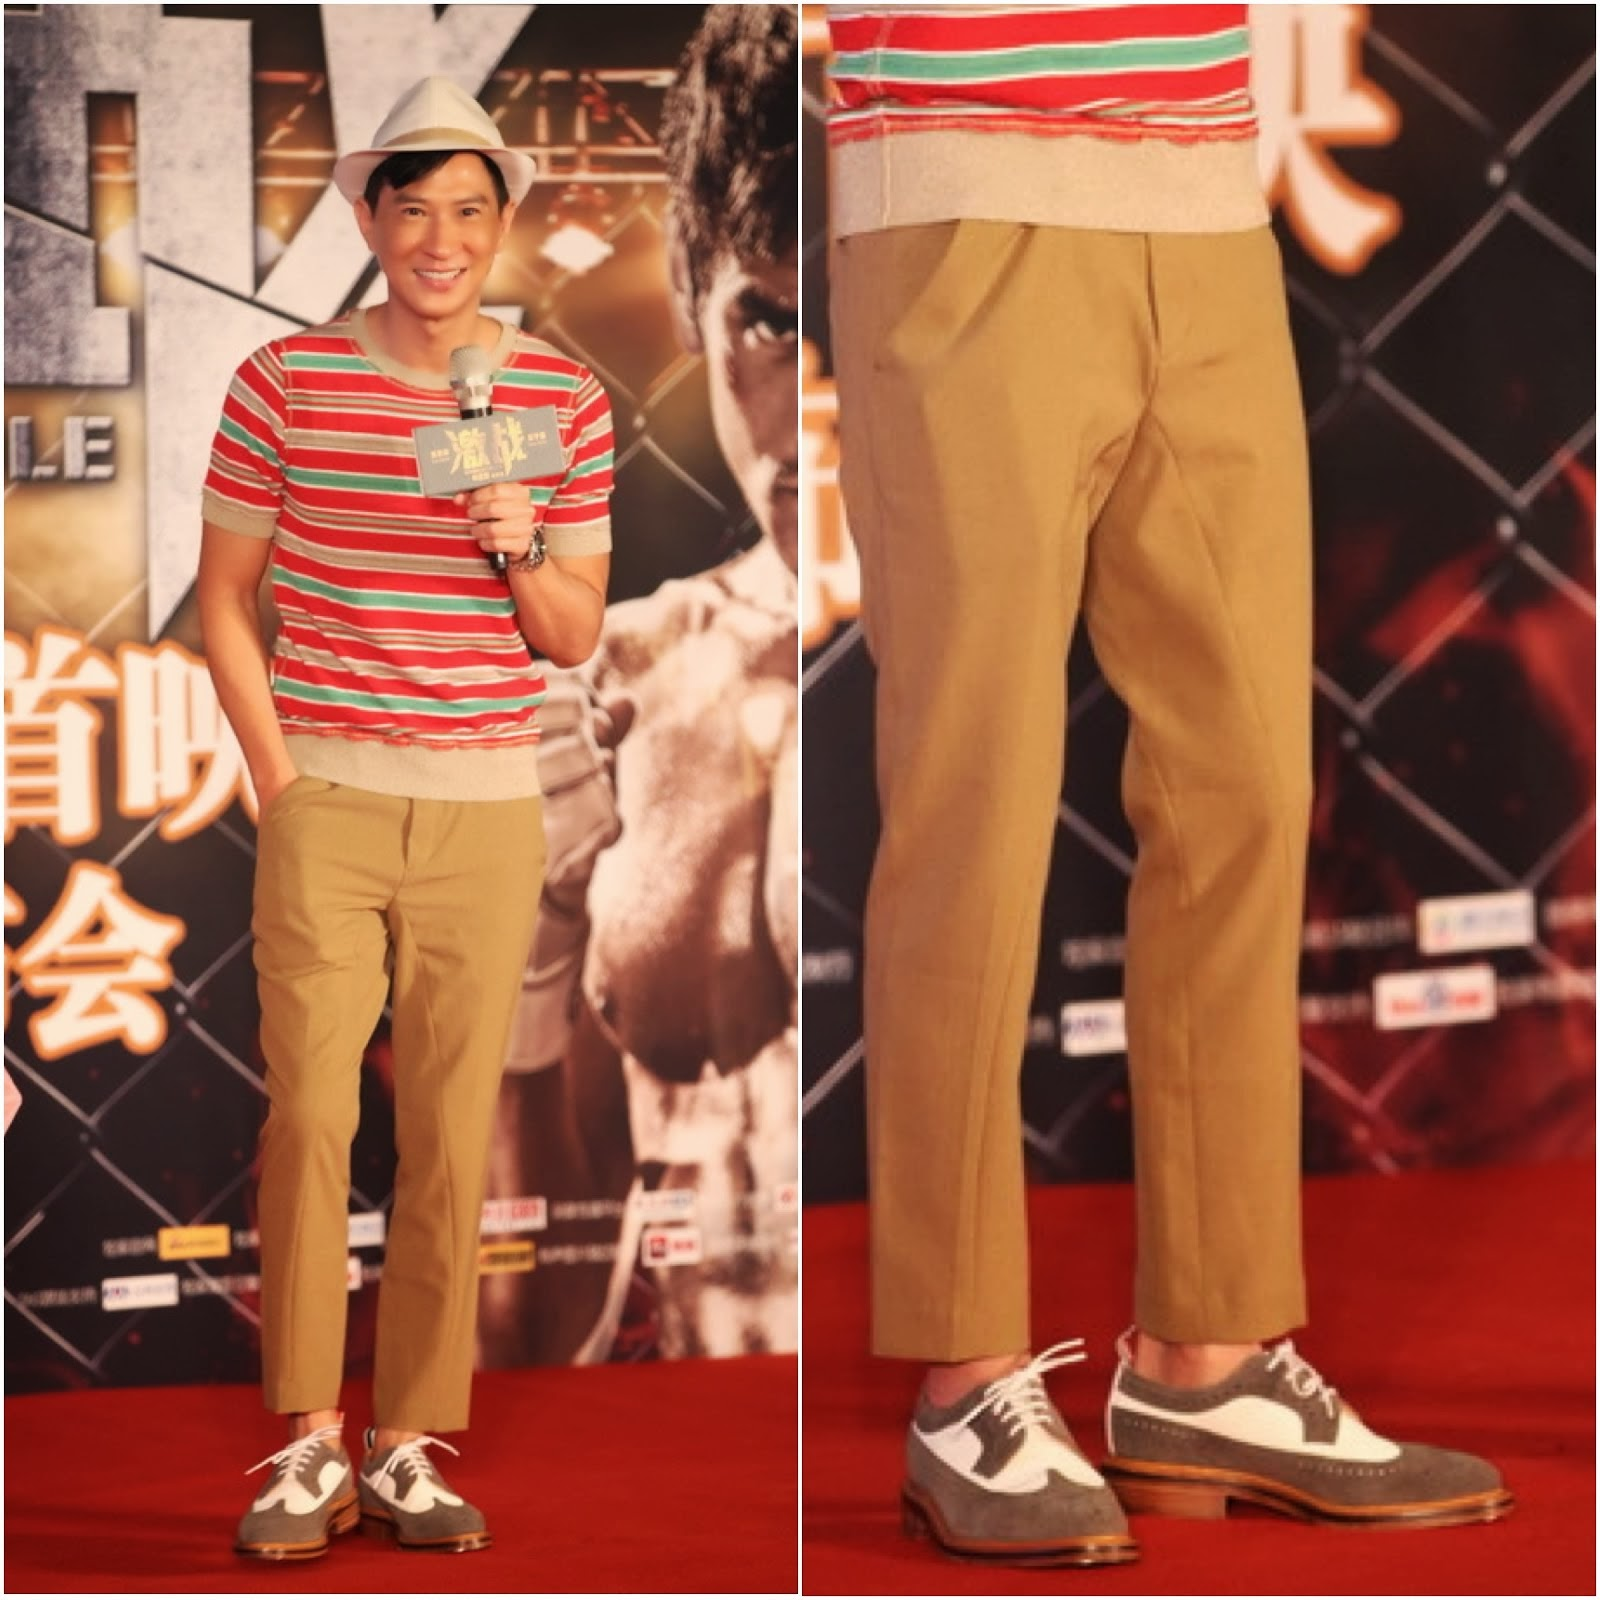 00O00 Menswear Blog http://00O00.blogspot.com Nick Cheung's [张家辉] Thom Browne suede Longwing brogues [激战]8月11日首映发布会